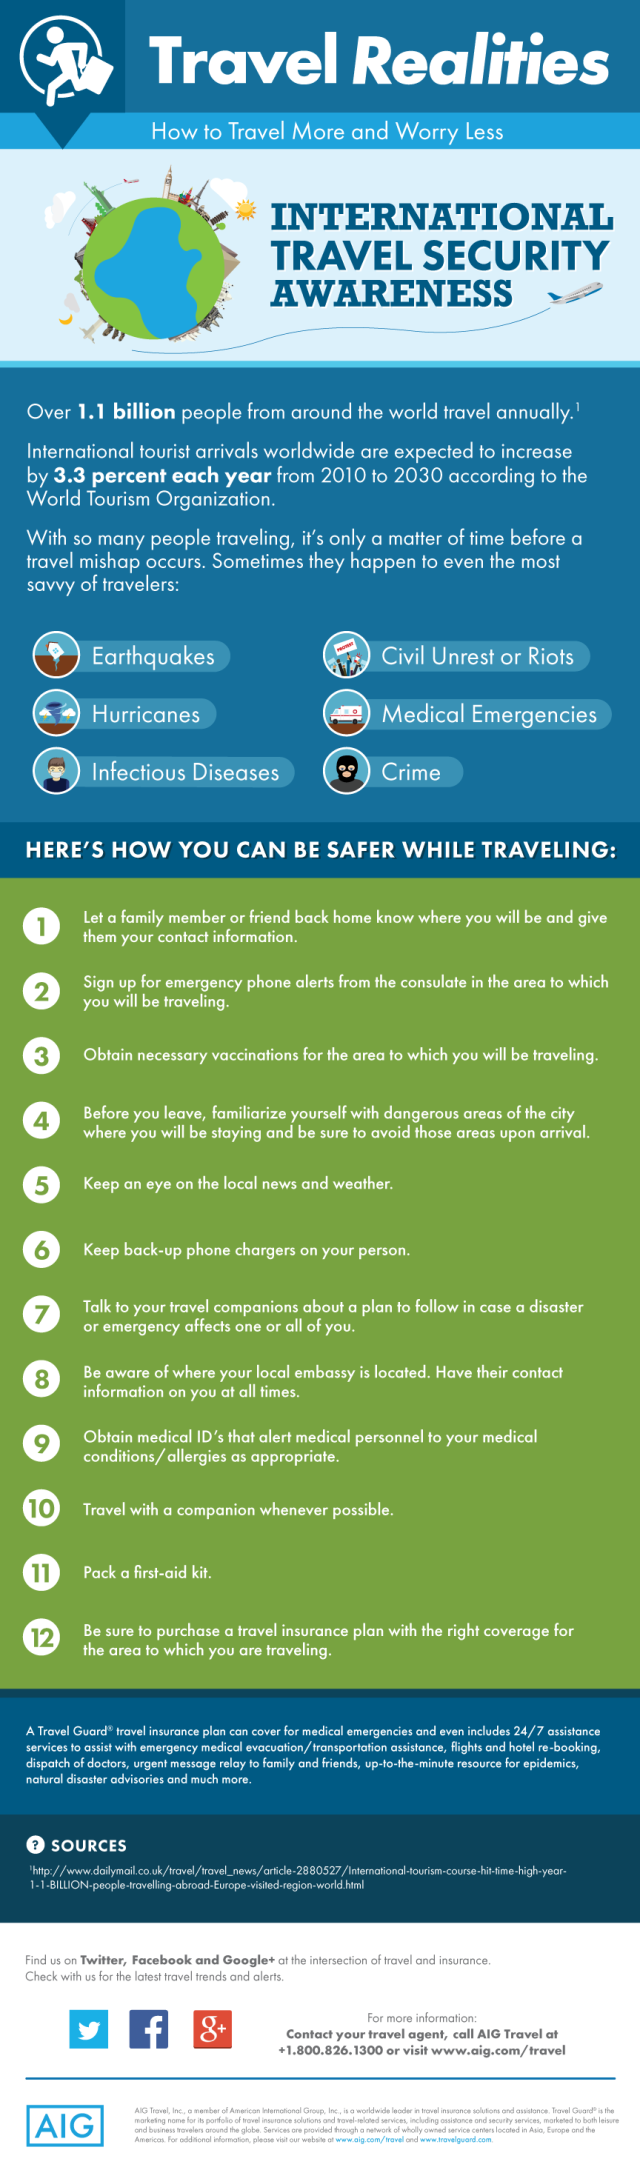 International Travel Security Tips